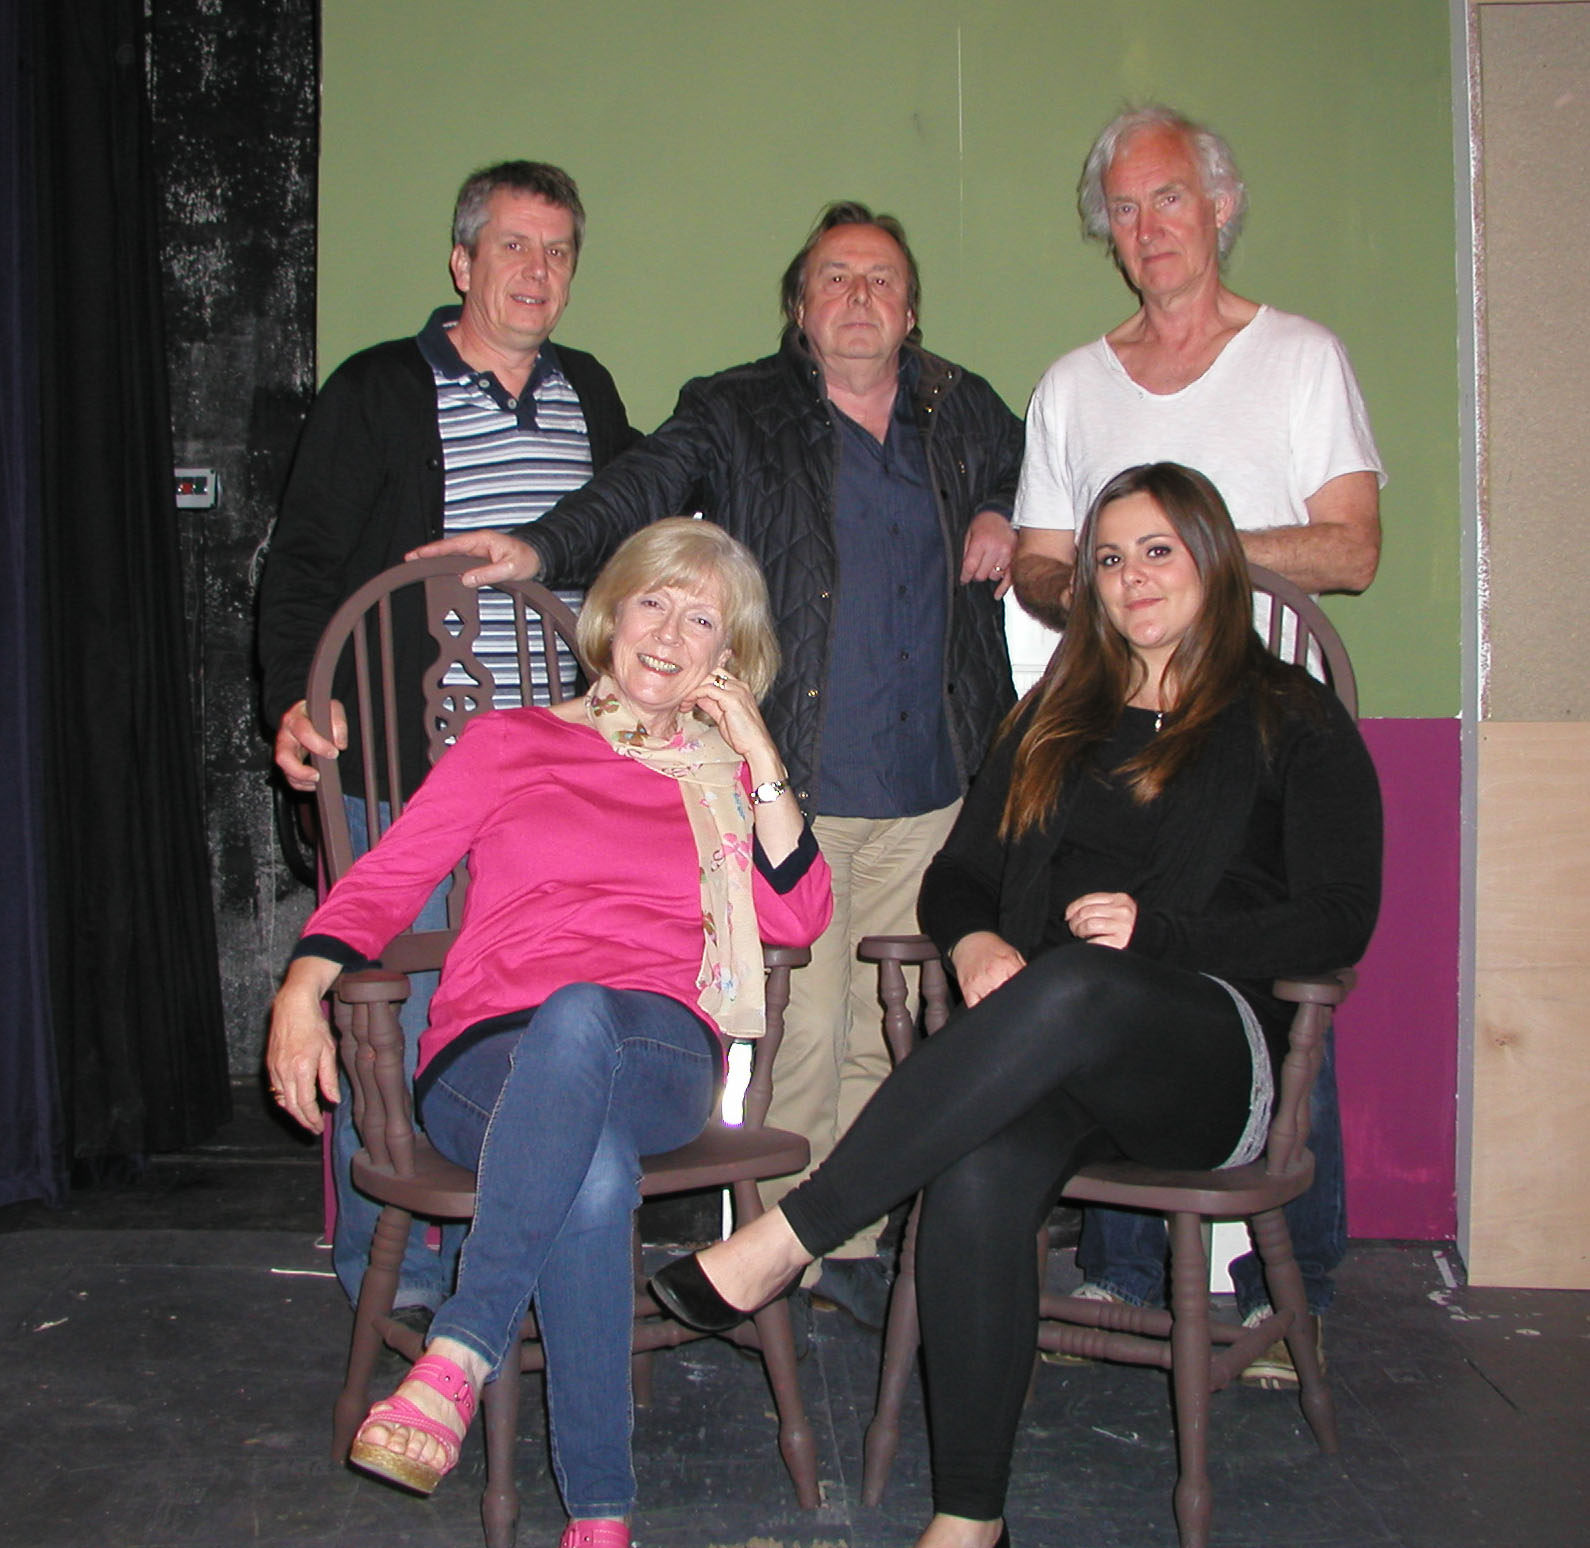 The cast from left to right, back row, Paul Baston, Tony Turner, Chris Marriott. and seated Viv Cunningham and Viccie Dougal